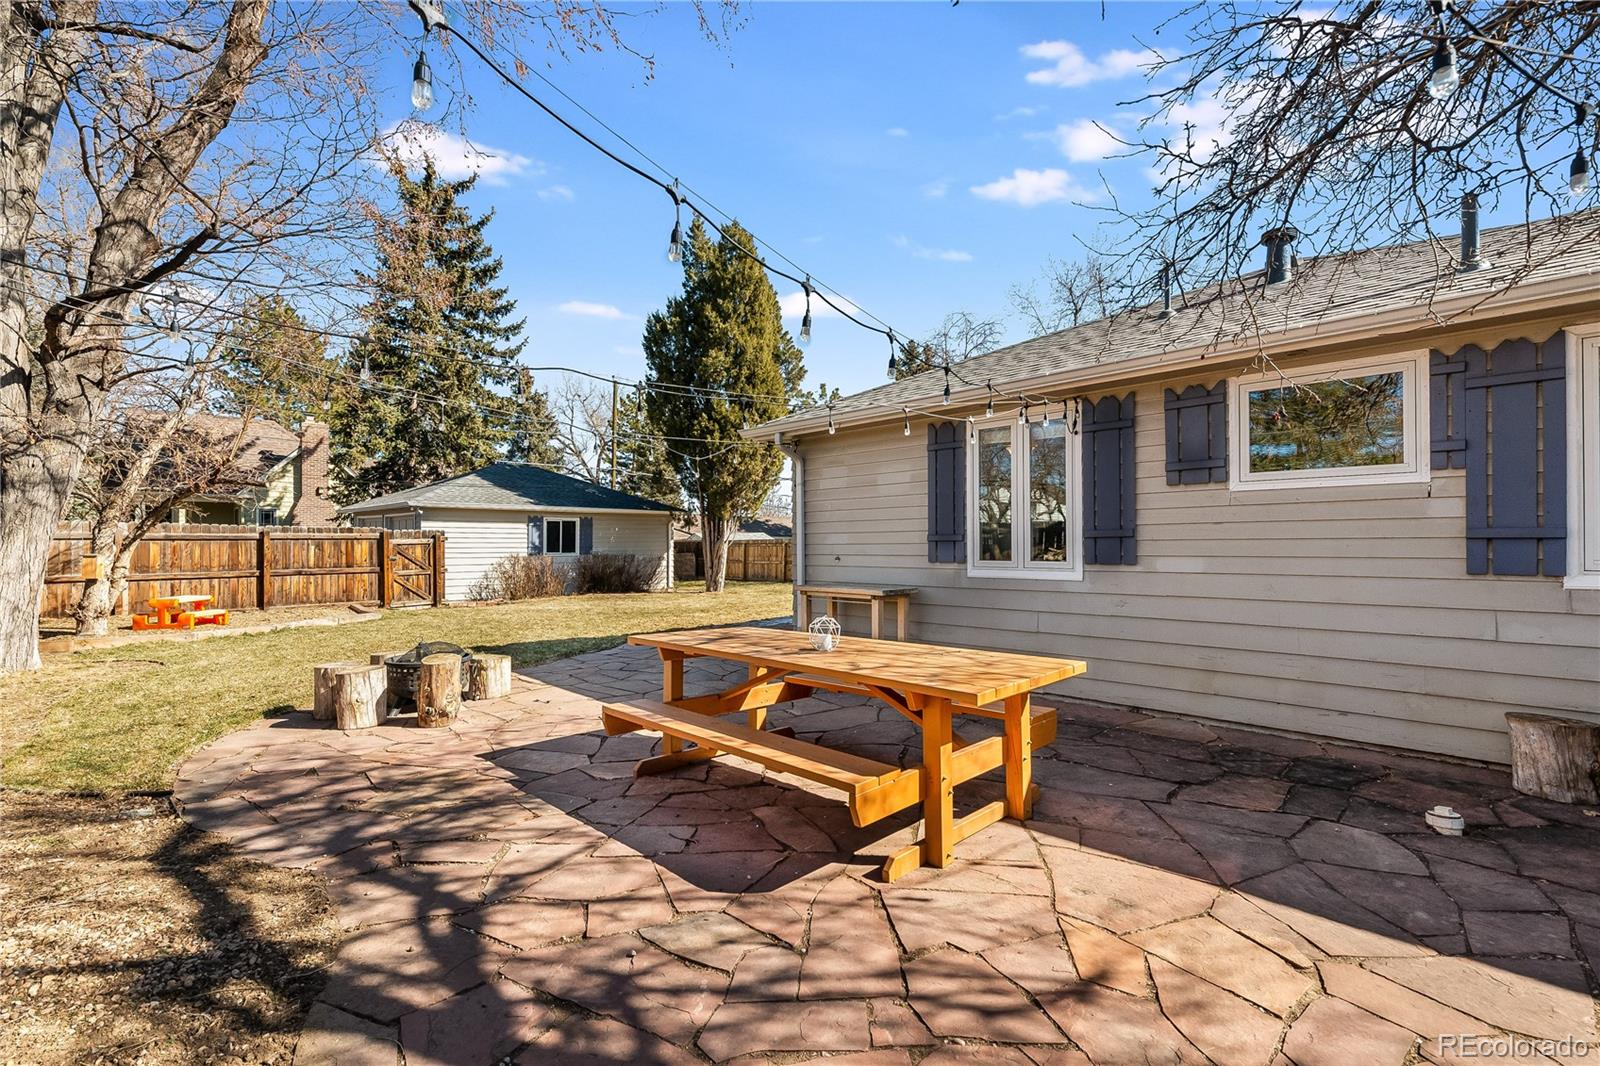 MLS# 2050120 - 15 - 7195 W 24th Place, Lakewood, CO 80214